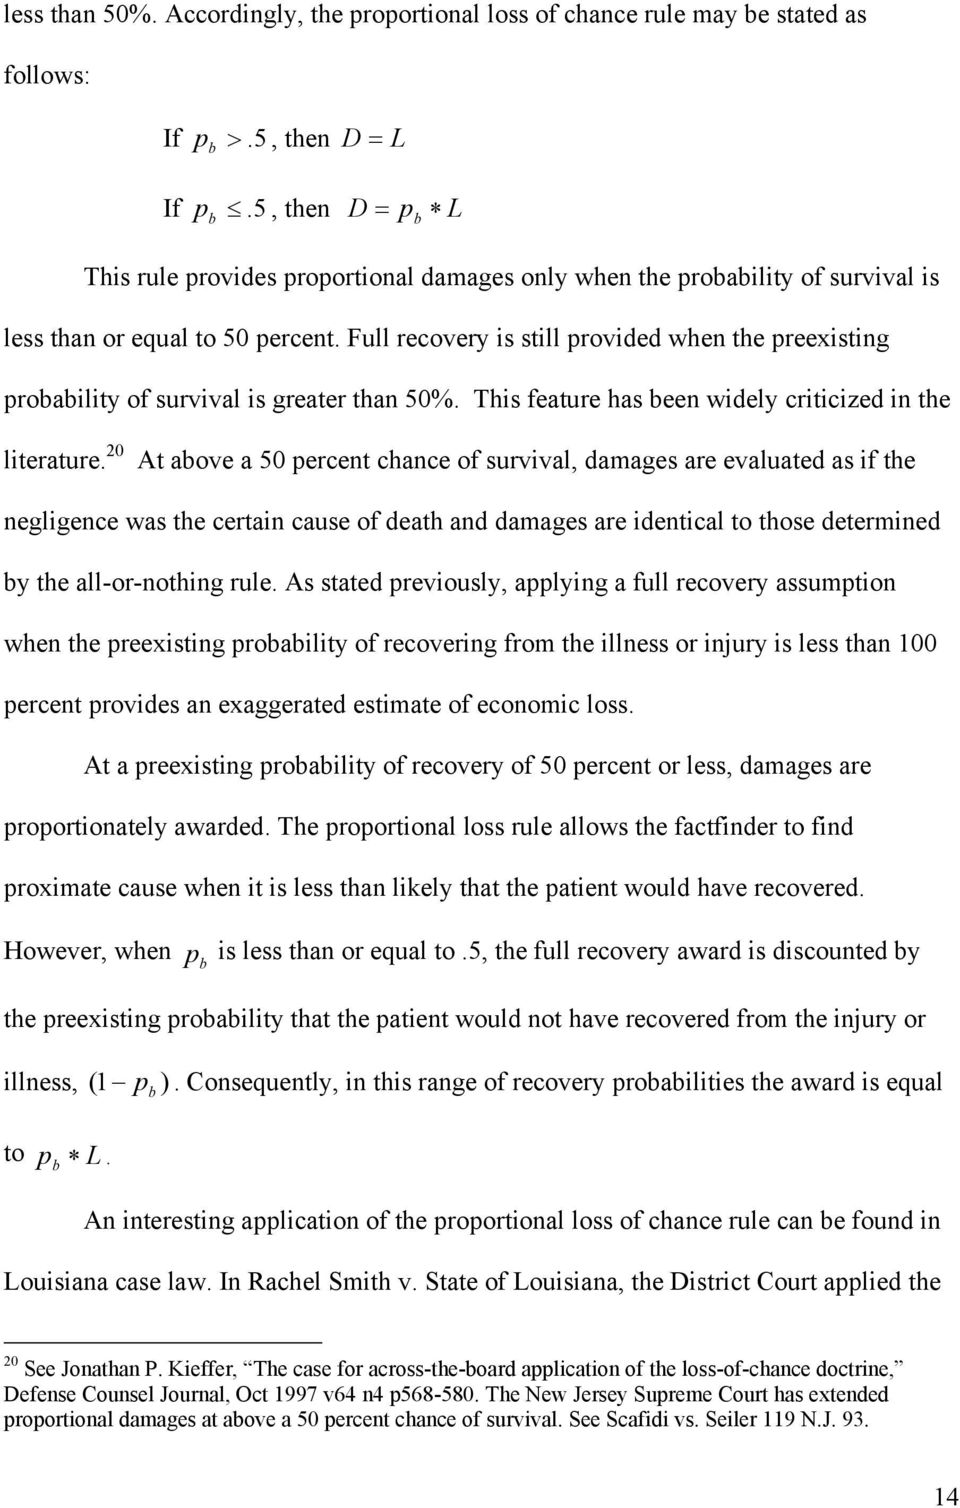 Full recovery is still provided when the preexisting probability of survival is greater than 50%. This feature has been widely criticized in the literature.